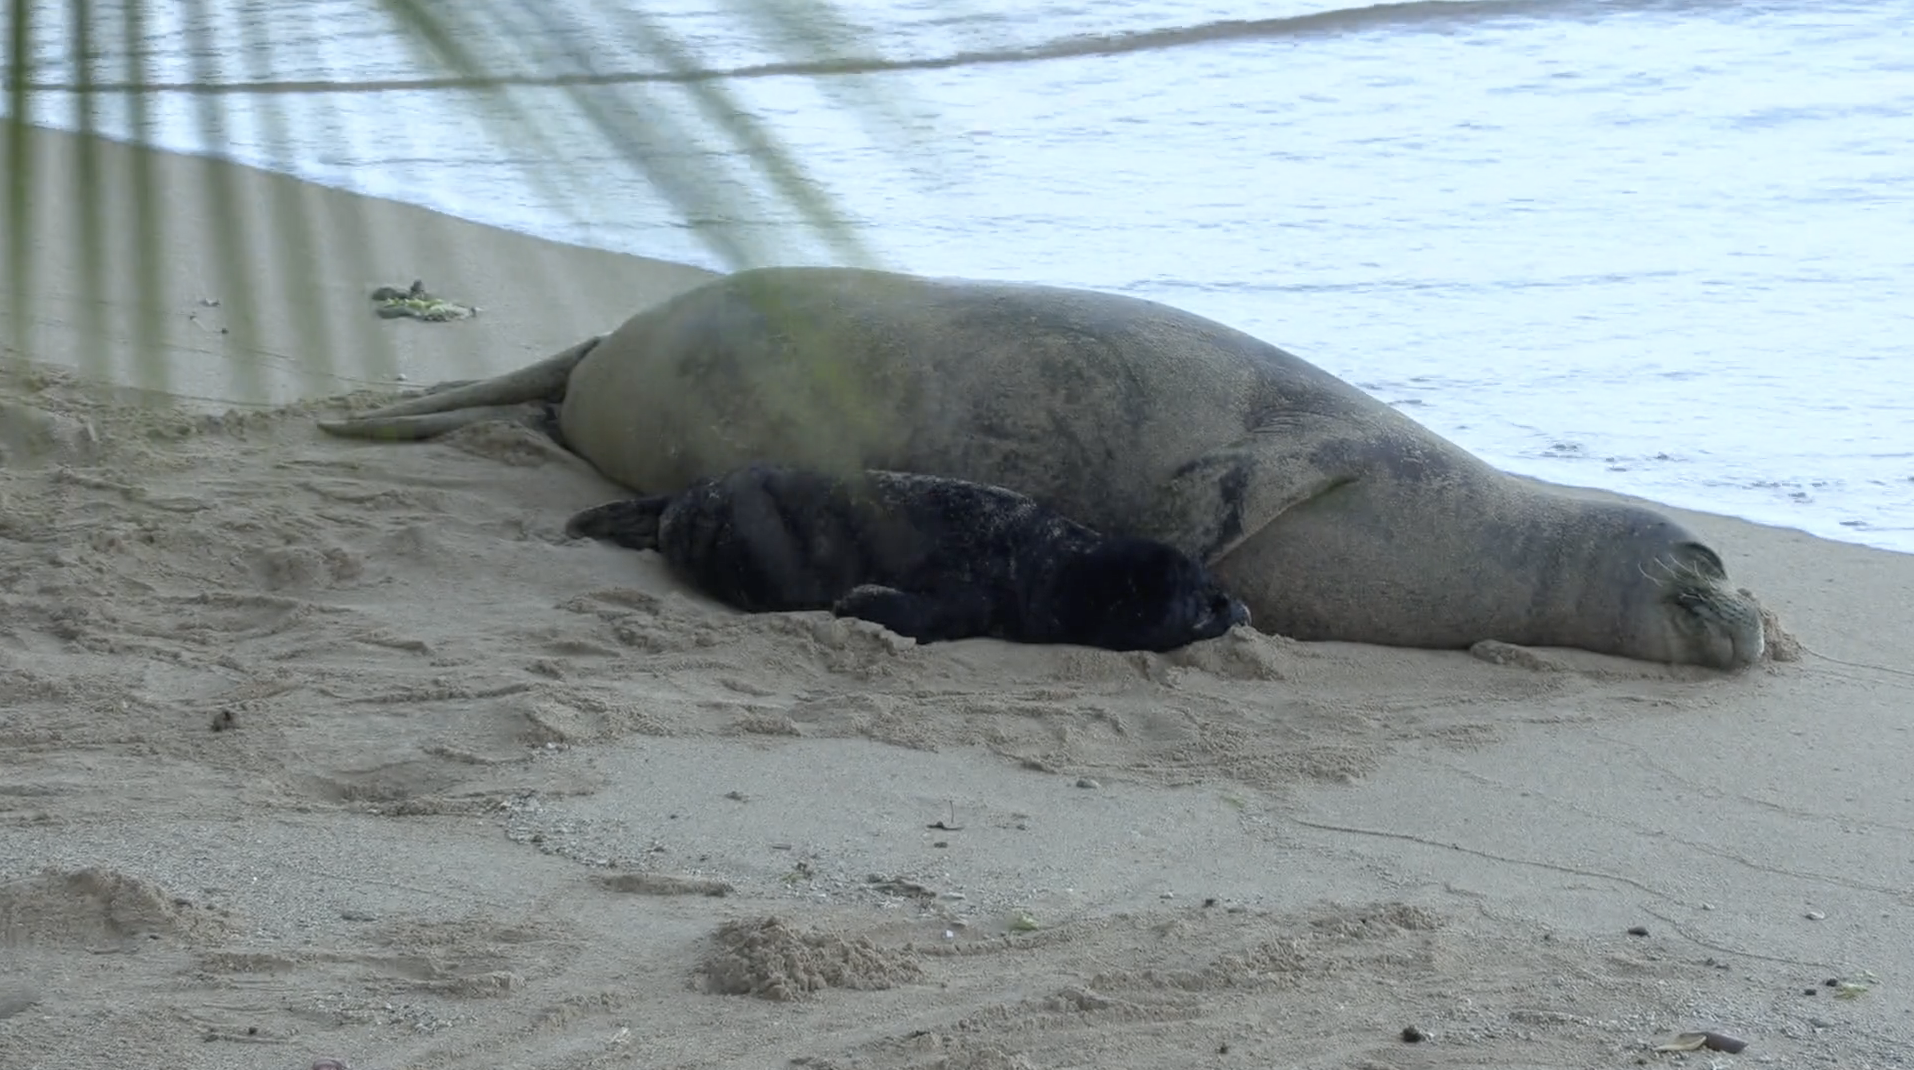 Witness to Aftermath of Mother Seal Attack Describes Harrowing Injuries to Snorkeler